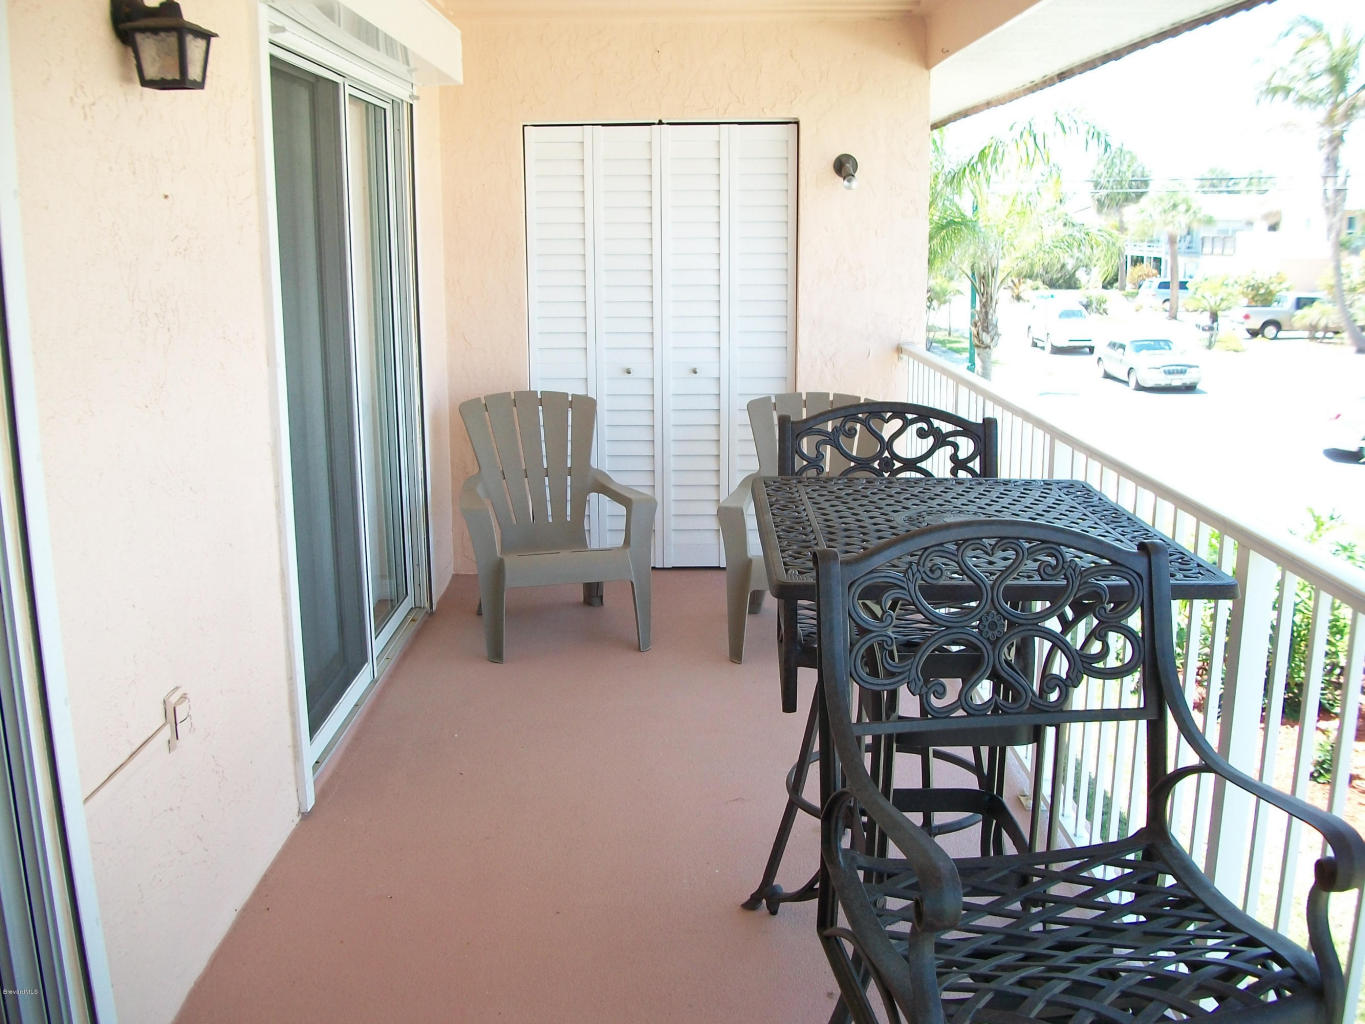 2 Bedroom Unit For Rent Melbourne New Rental Seton By The Sea Condo 206 In Cape Canaveral